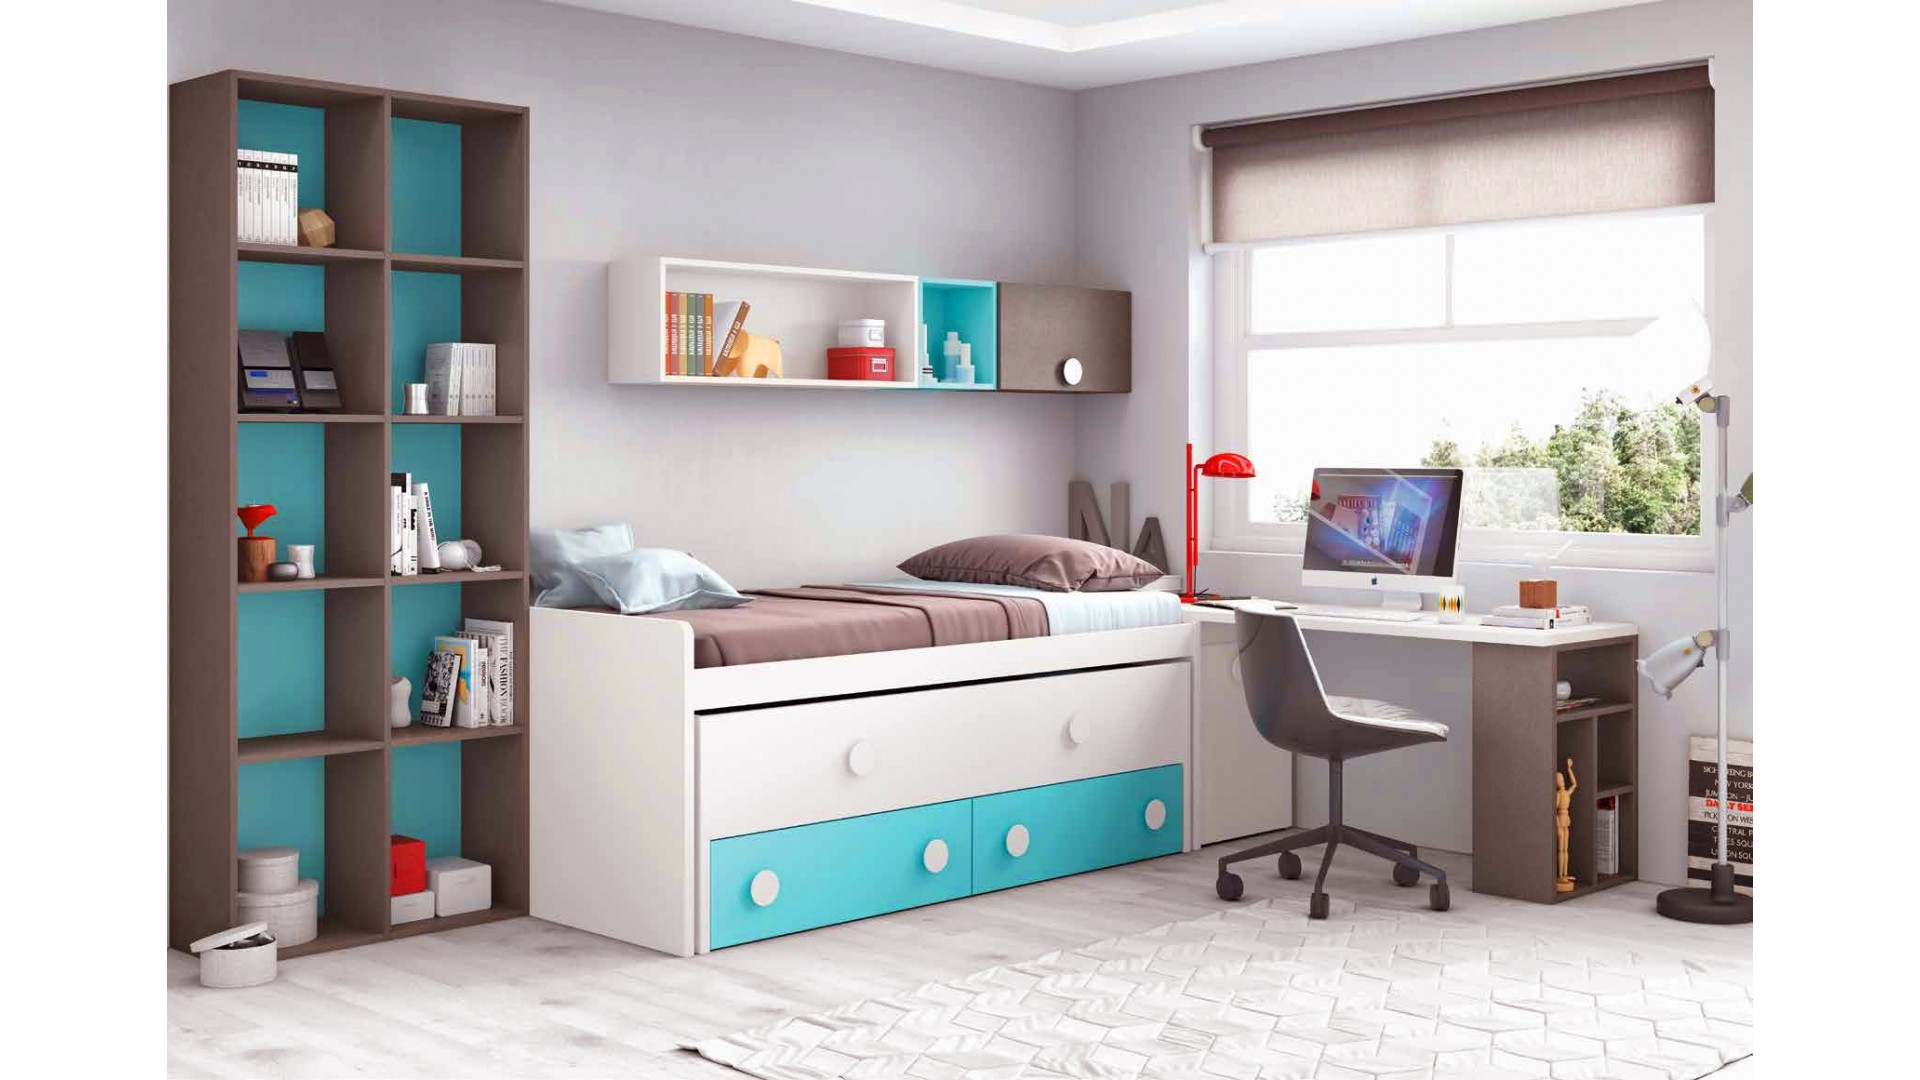 chambre compl te enfant avec lit biblioth que glicerio so nuit. Black Bedroom Furniture Sets. Home Design Ideas